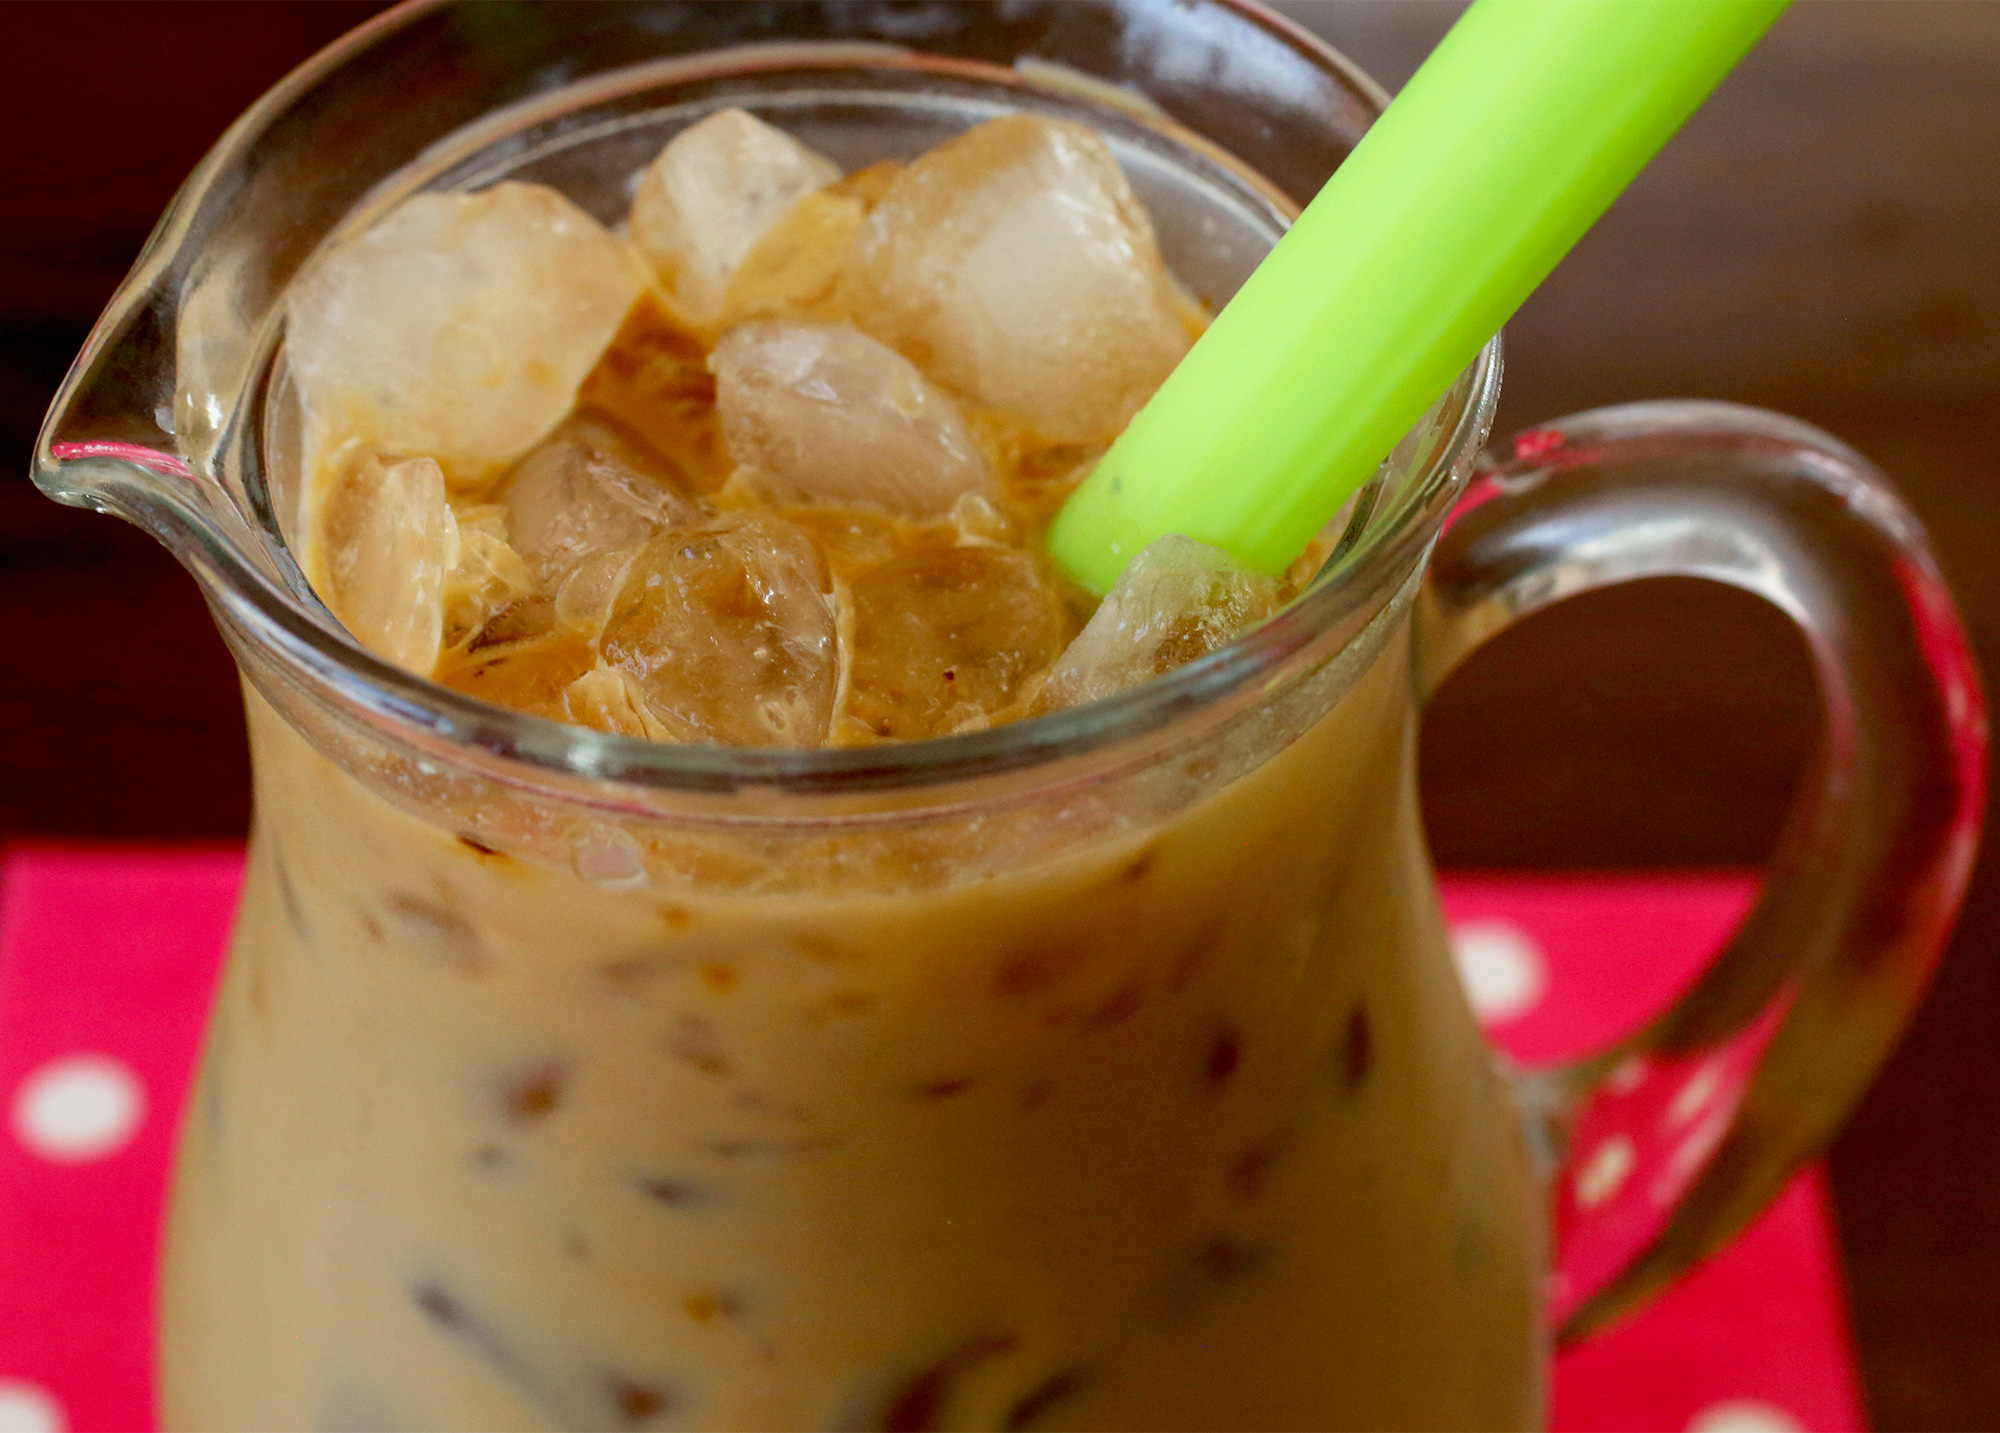 Iced coffee (Naeng-keopi) recipe